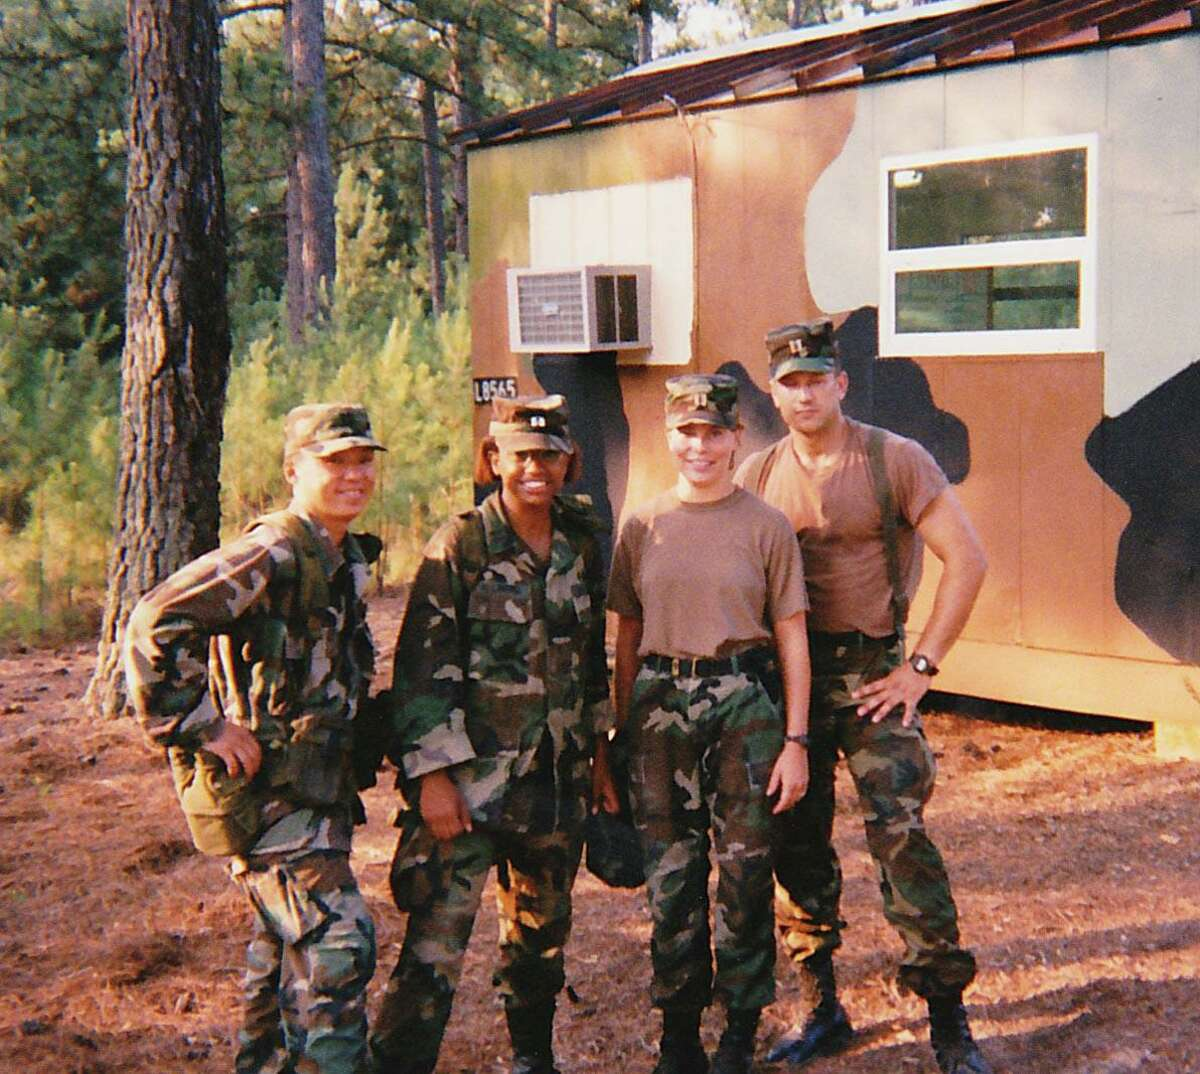 Bess Healy, second from right, served in the U.S. Army from 1994 to 2001, reaching the rank of captain.